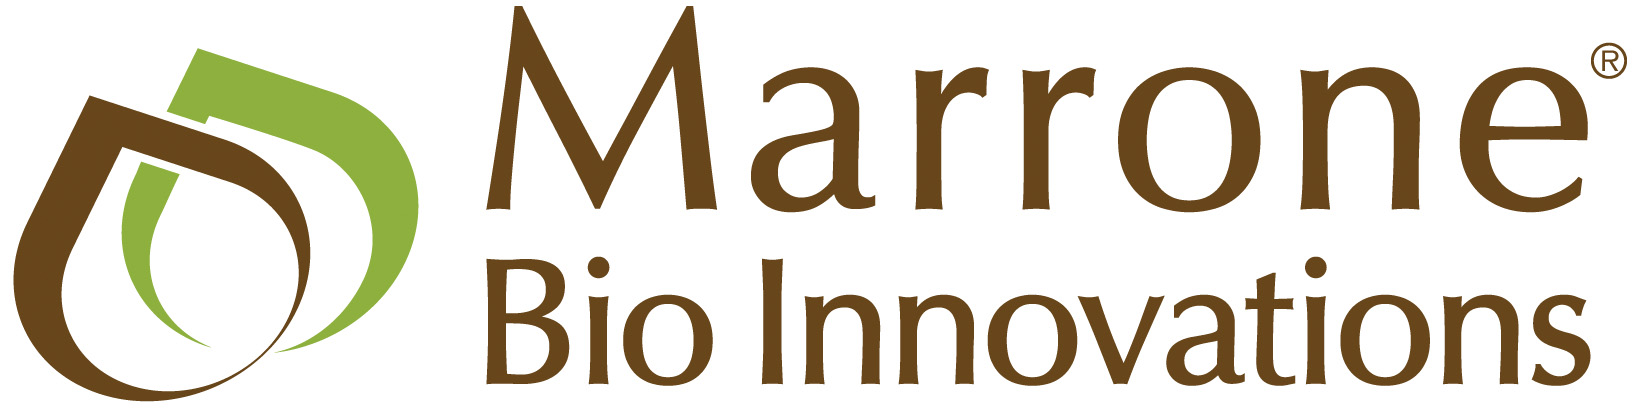 68963-marrone-bio-innovations-1634x412.jpeg